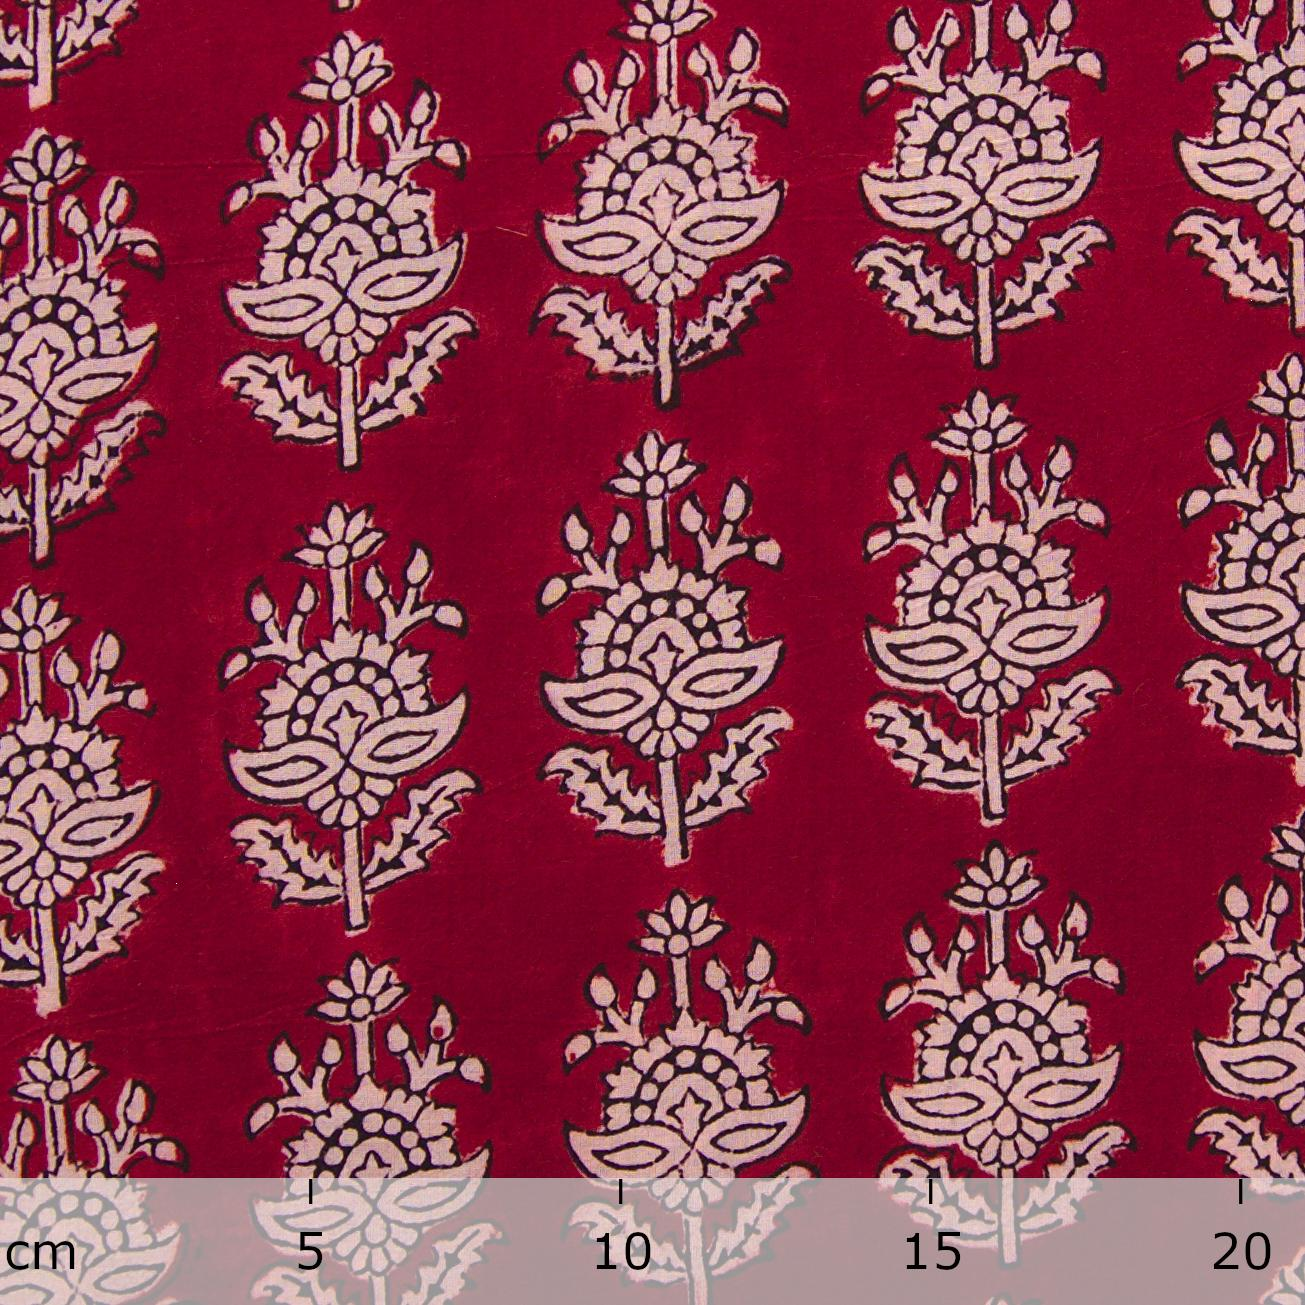 100% Block-Printed Cotton Fabric From India - Talkin' About Design - Iron Rust Black & Alizarin Red Dyes - Ruler - Live